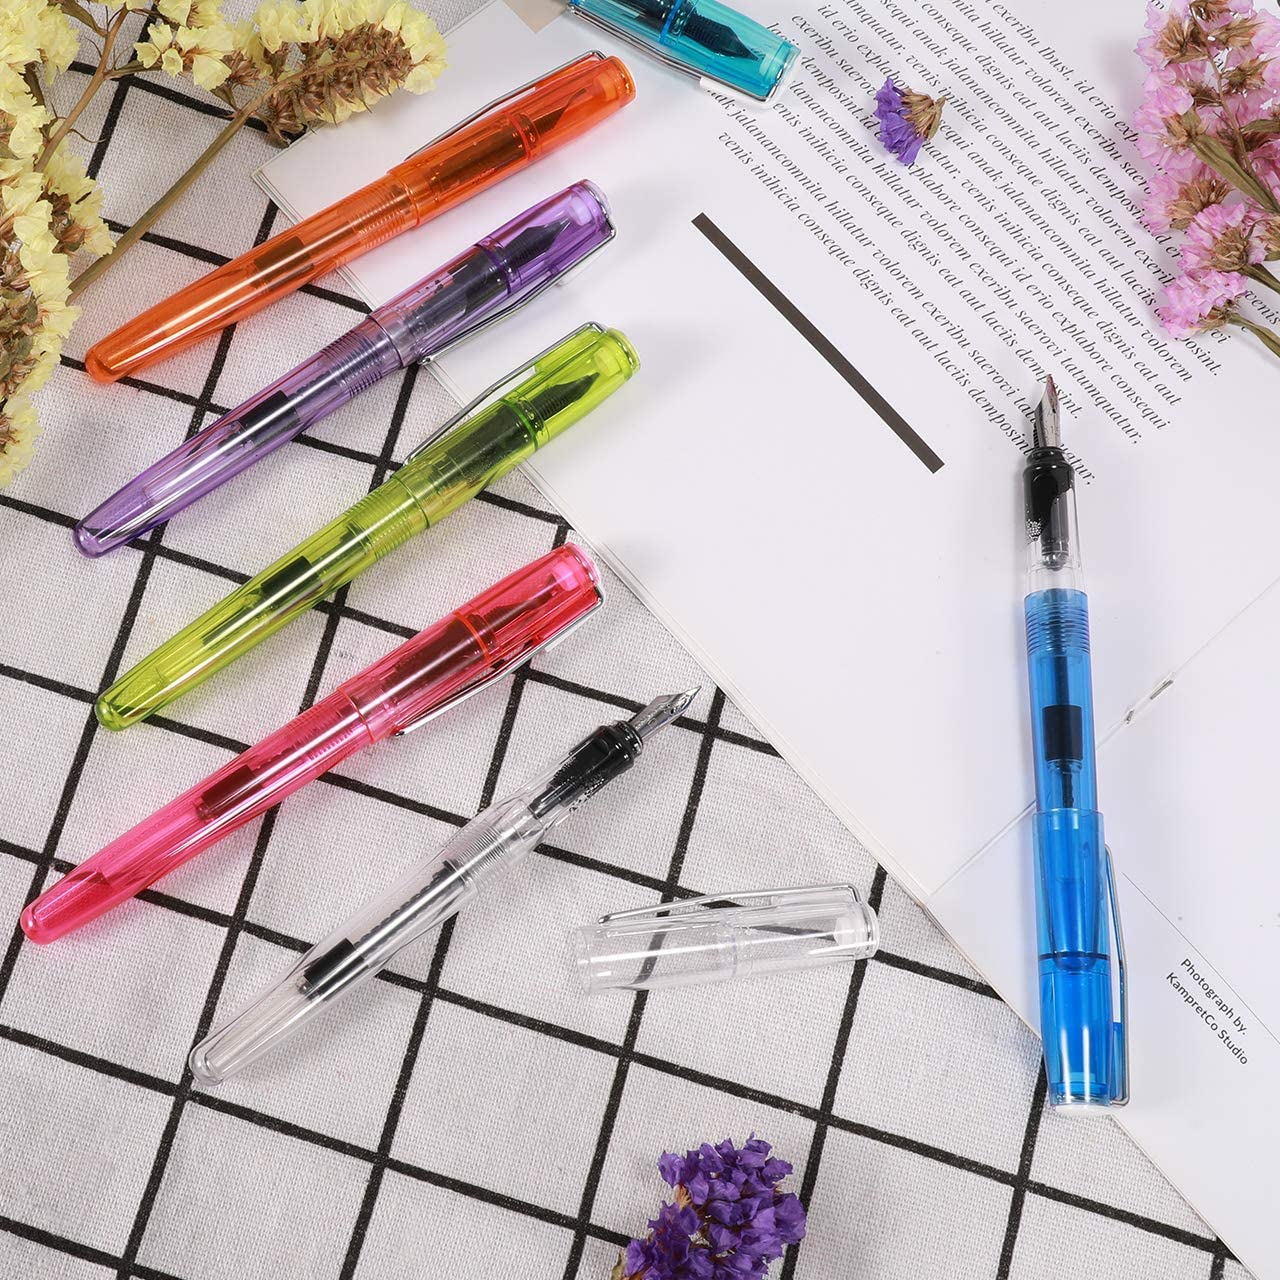 Pen Calligraphy Set with 7 Pens and 24 Colorful Ink Calligraphy Fountain Pen for Beginners Writing Signature Birthday Christmas joylink Calligraphy Pen Set